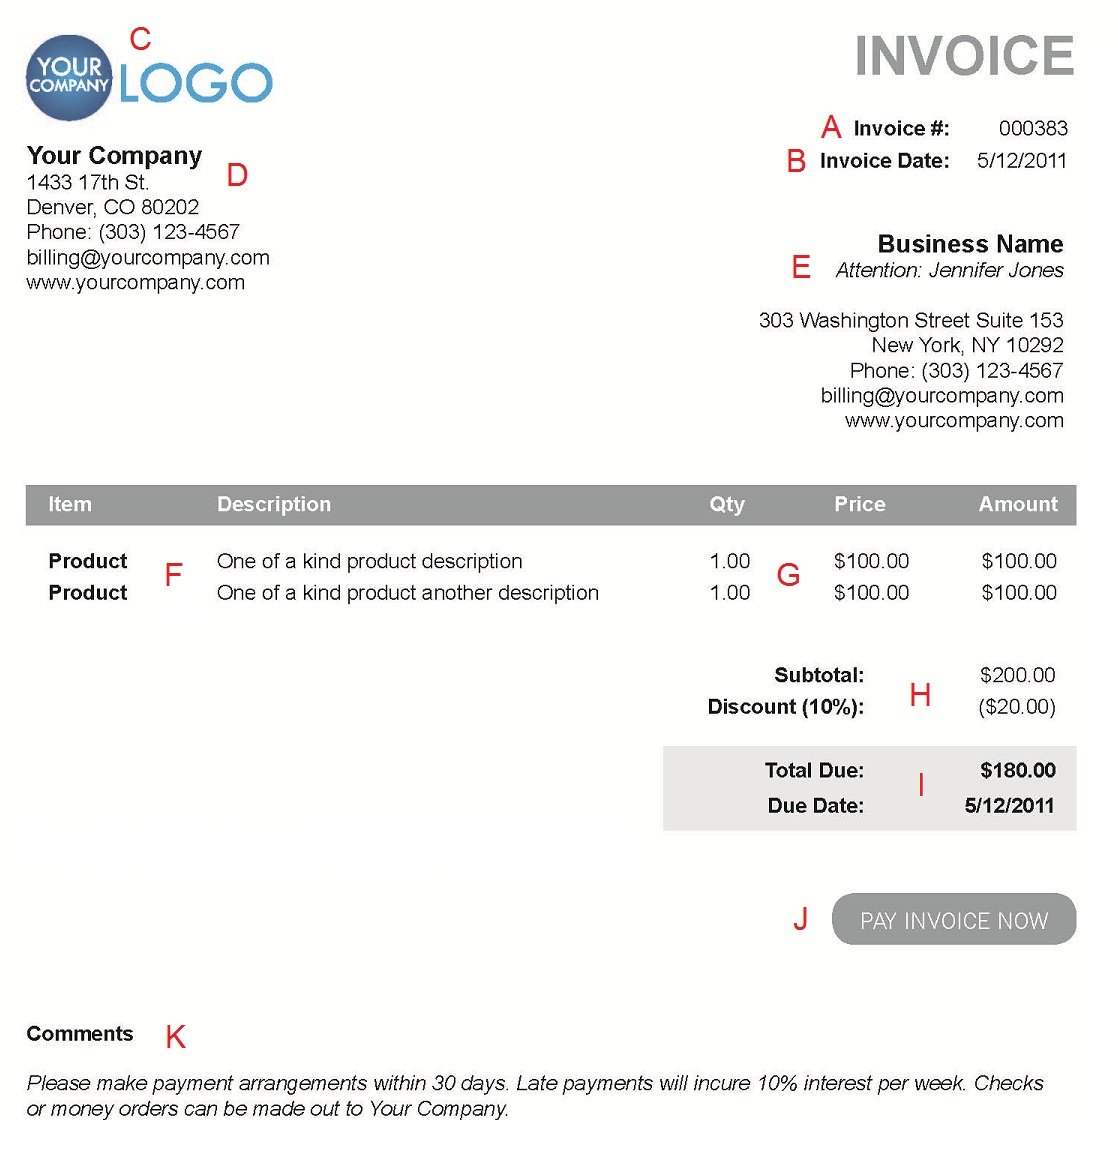 Centralasianshepherdus  Pleasing The  Different Sections Of An Electronic Payment Invoice With Goodlooking A  With Beautiful Free Receipt Template Excel Also Pan Cake Receipt In Addition Virtuallythere E Ticket Receipt And Where Is The Tracking Number On Post Office Receipt As Well As What Can You Claim On Tax Without Receipts Additionally House Rent Receipt Format Doc From Paysimplecom With Centralasianshepherdus  Goodlooking The  Different Sections Of An Electronic Payment Invoice With Beautiful A  And Pleasing Free Receipt Template Excel Also Pan Cake Receipt In Addition Virtuallythere E Ticket Receipt From Paysimplecom